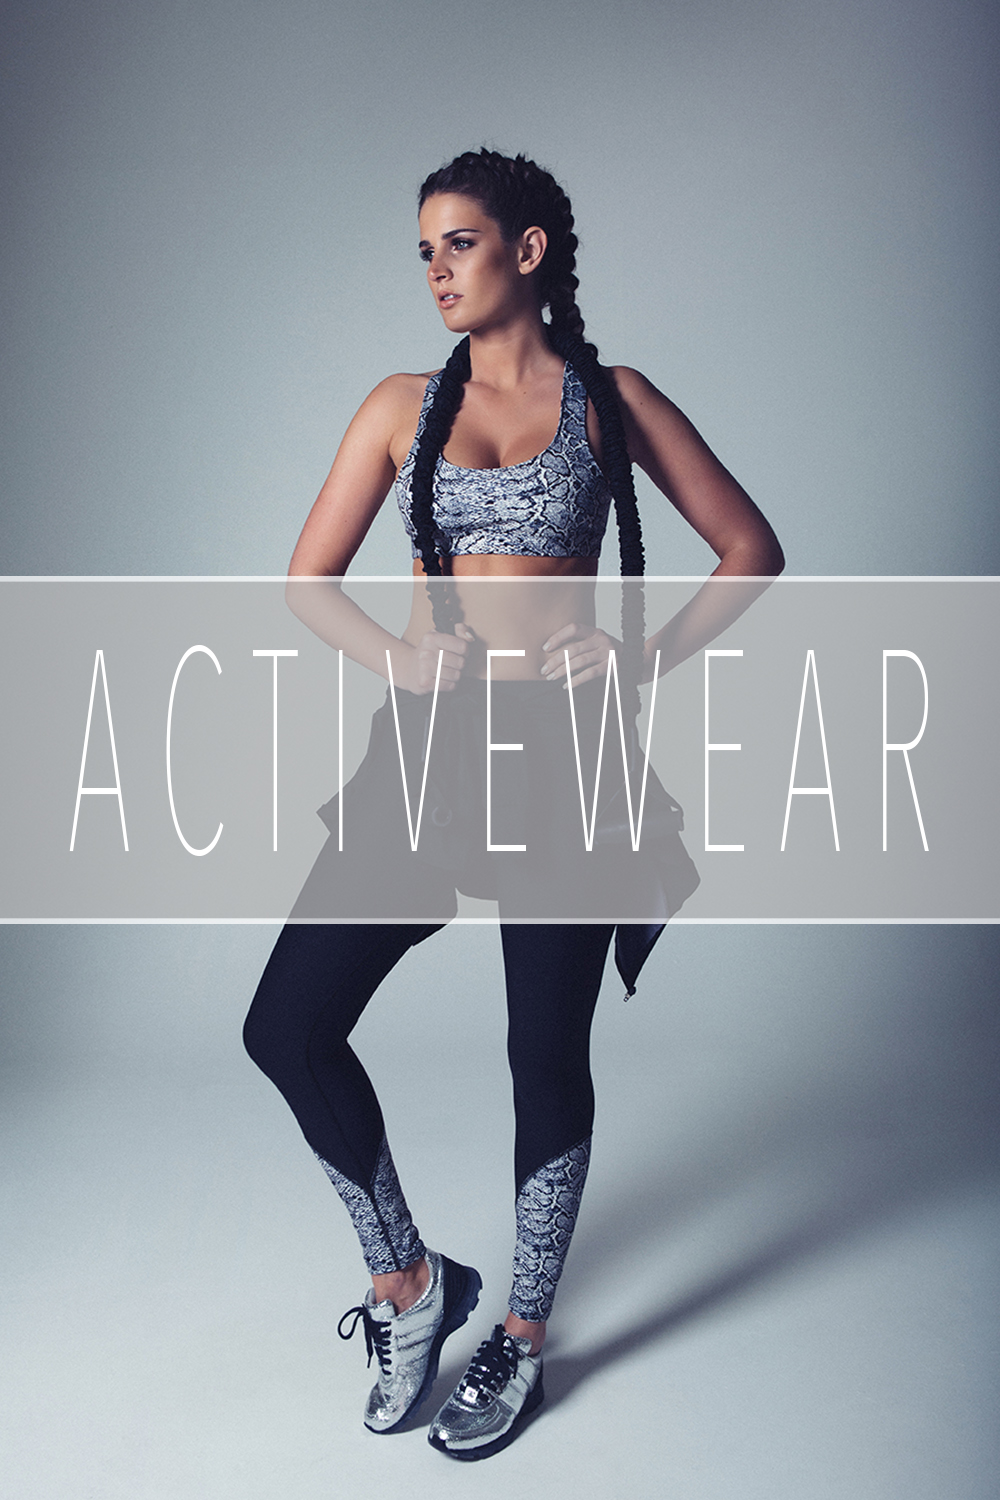 activewear-home-image